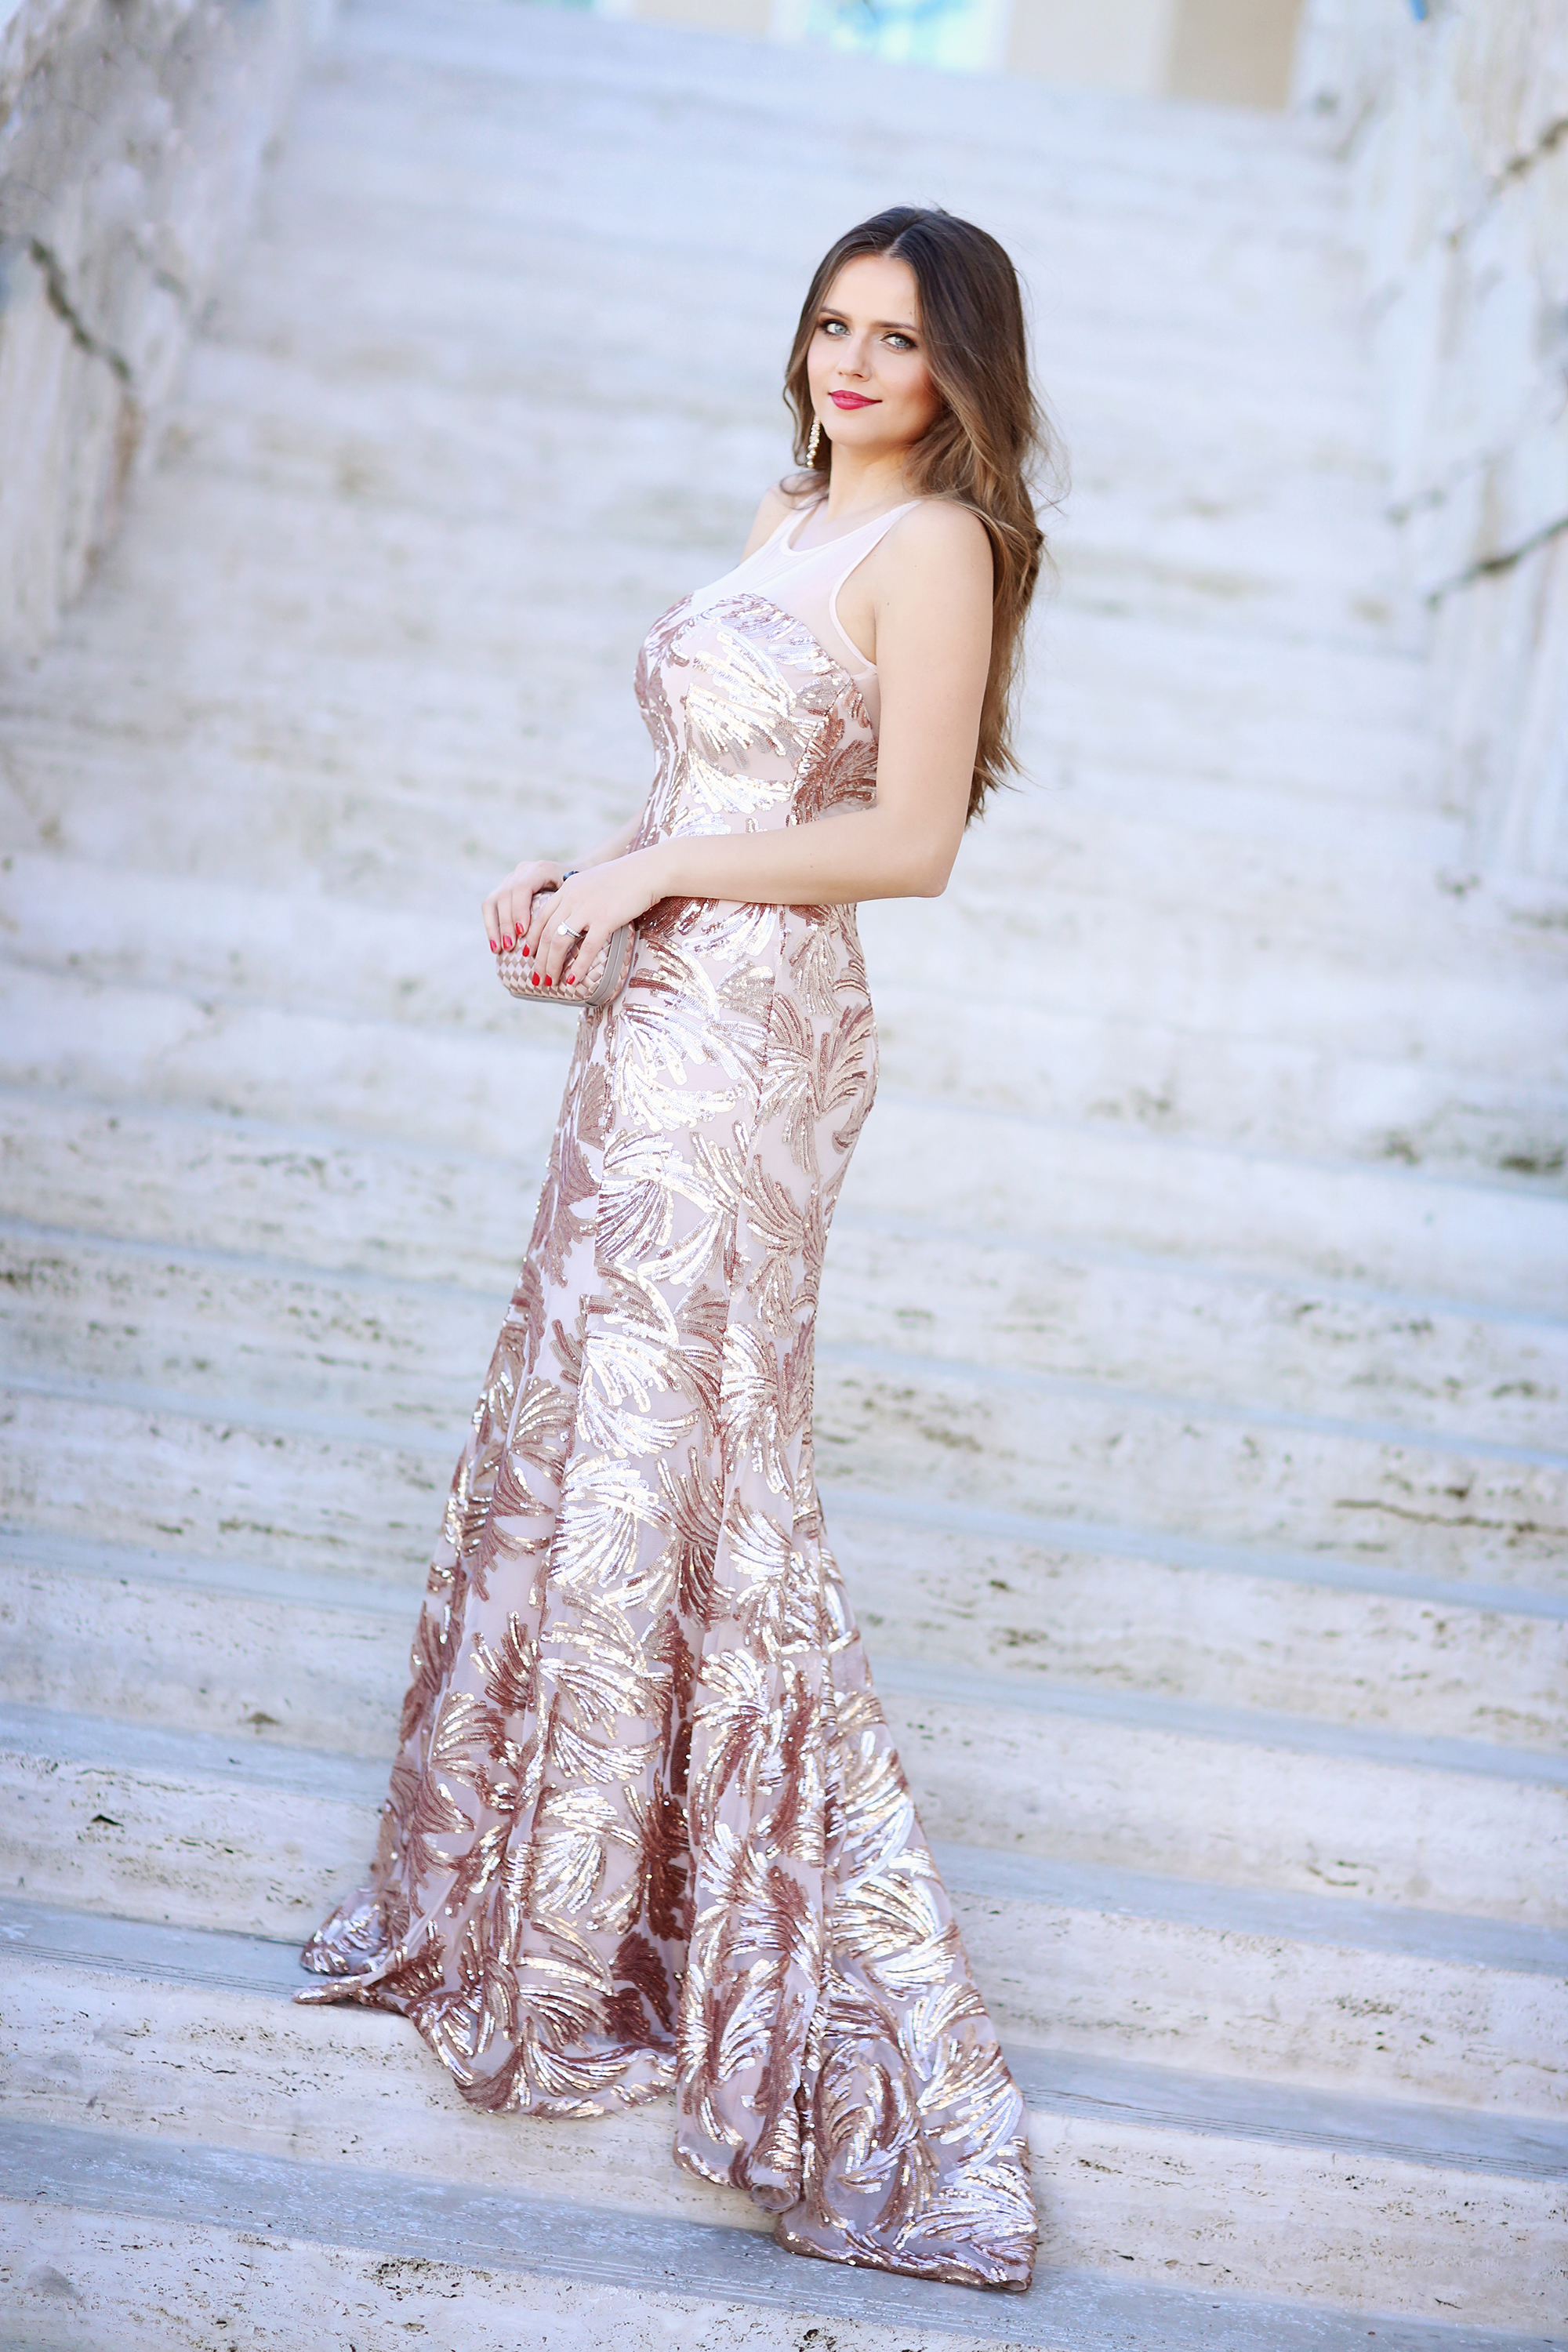 OOTD Rose Gold Sequin Mermaid Gown A Fashion Beauty Amp Lifestyle Blog